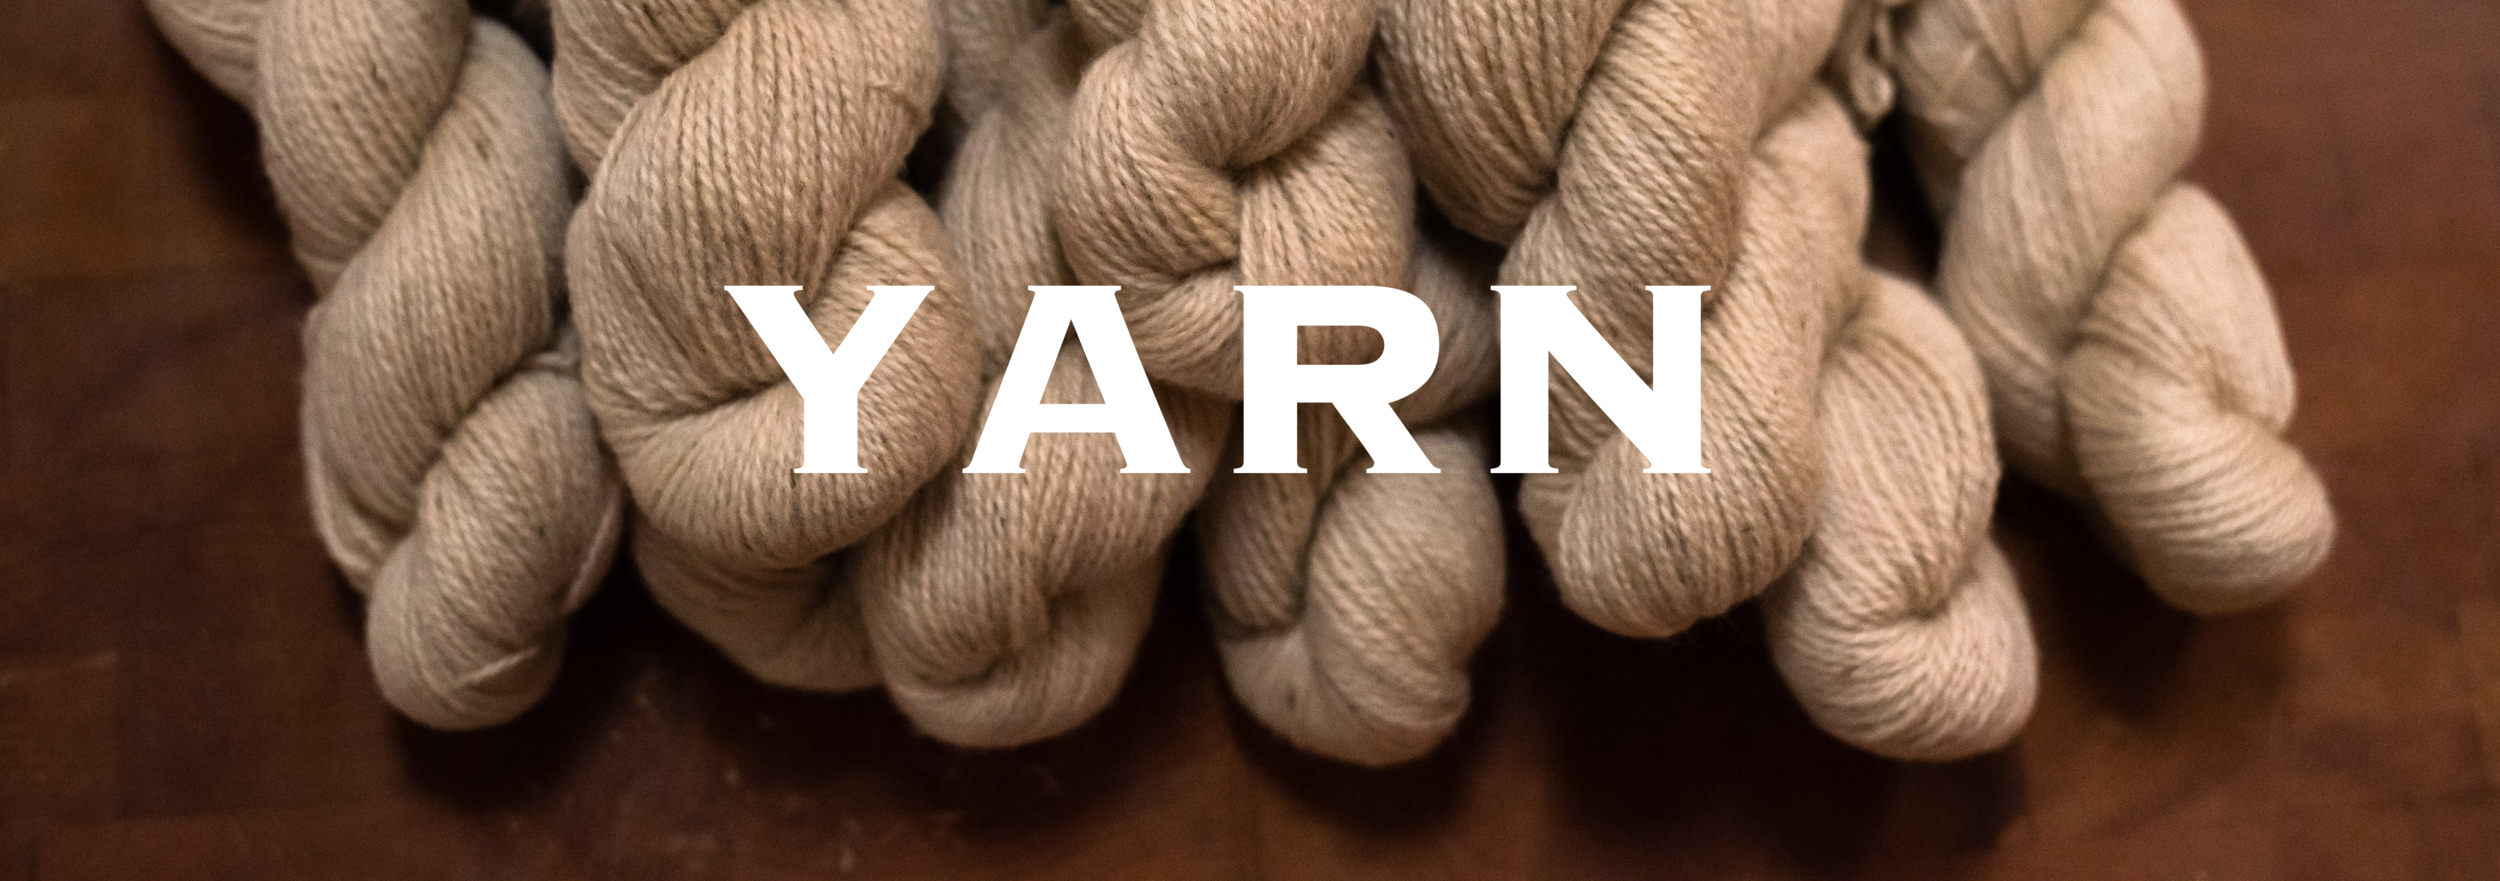 Website - YARN.png